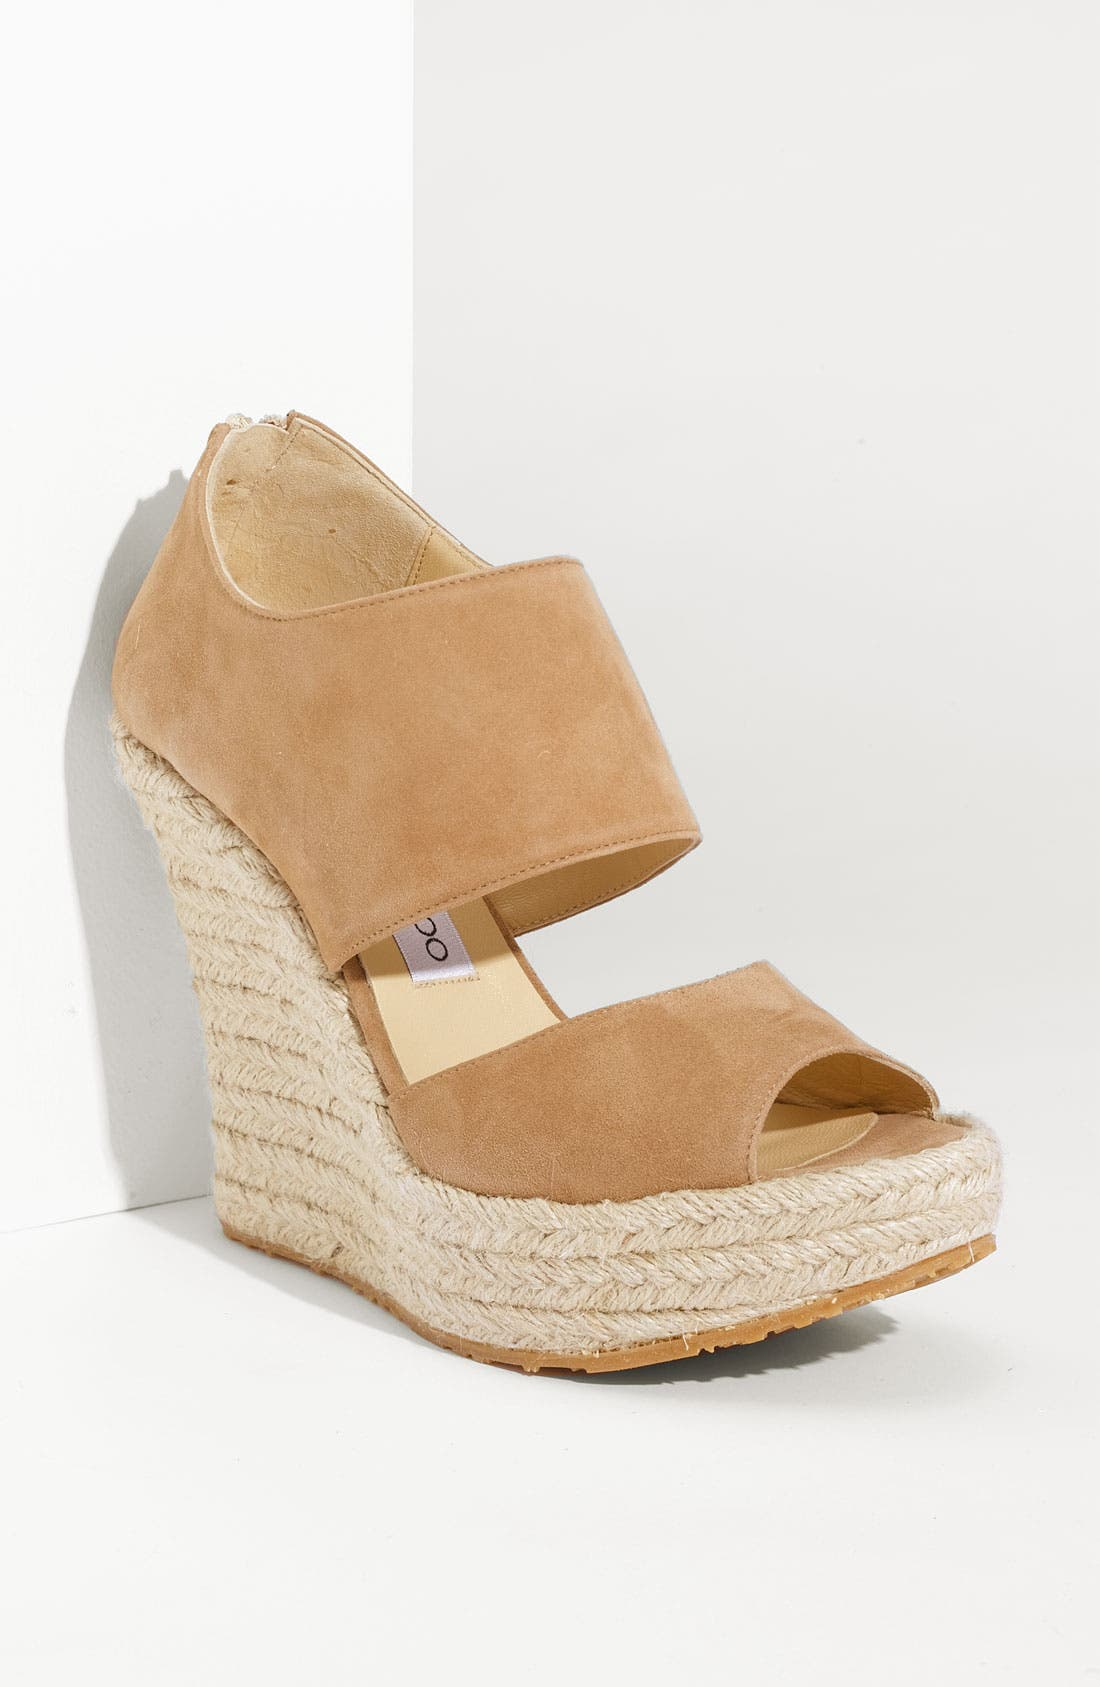 Alternate Image 1 Selected - Jimmy Choo 'Patriot' Wedge Sandal (Exclusive)